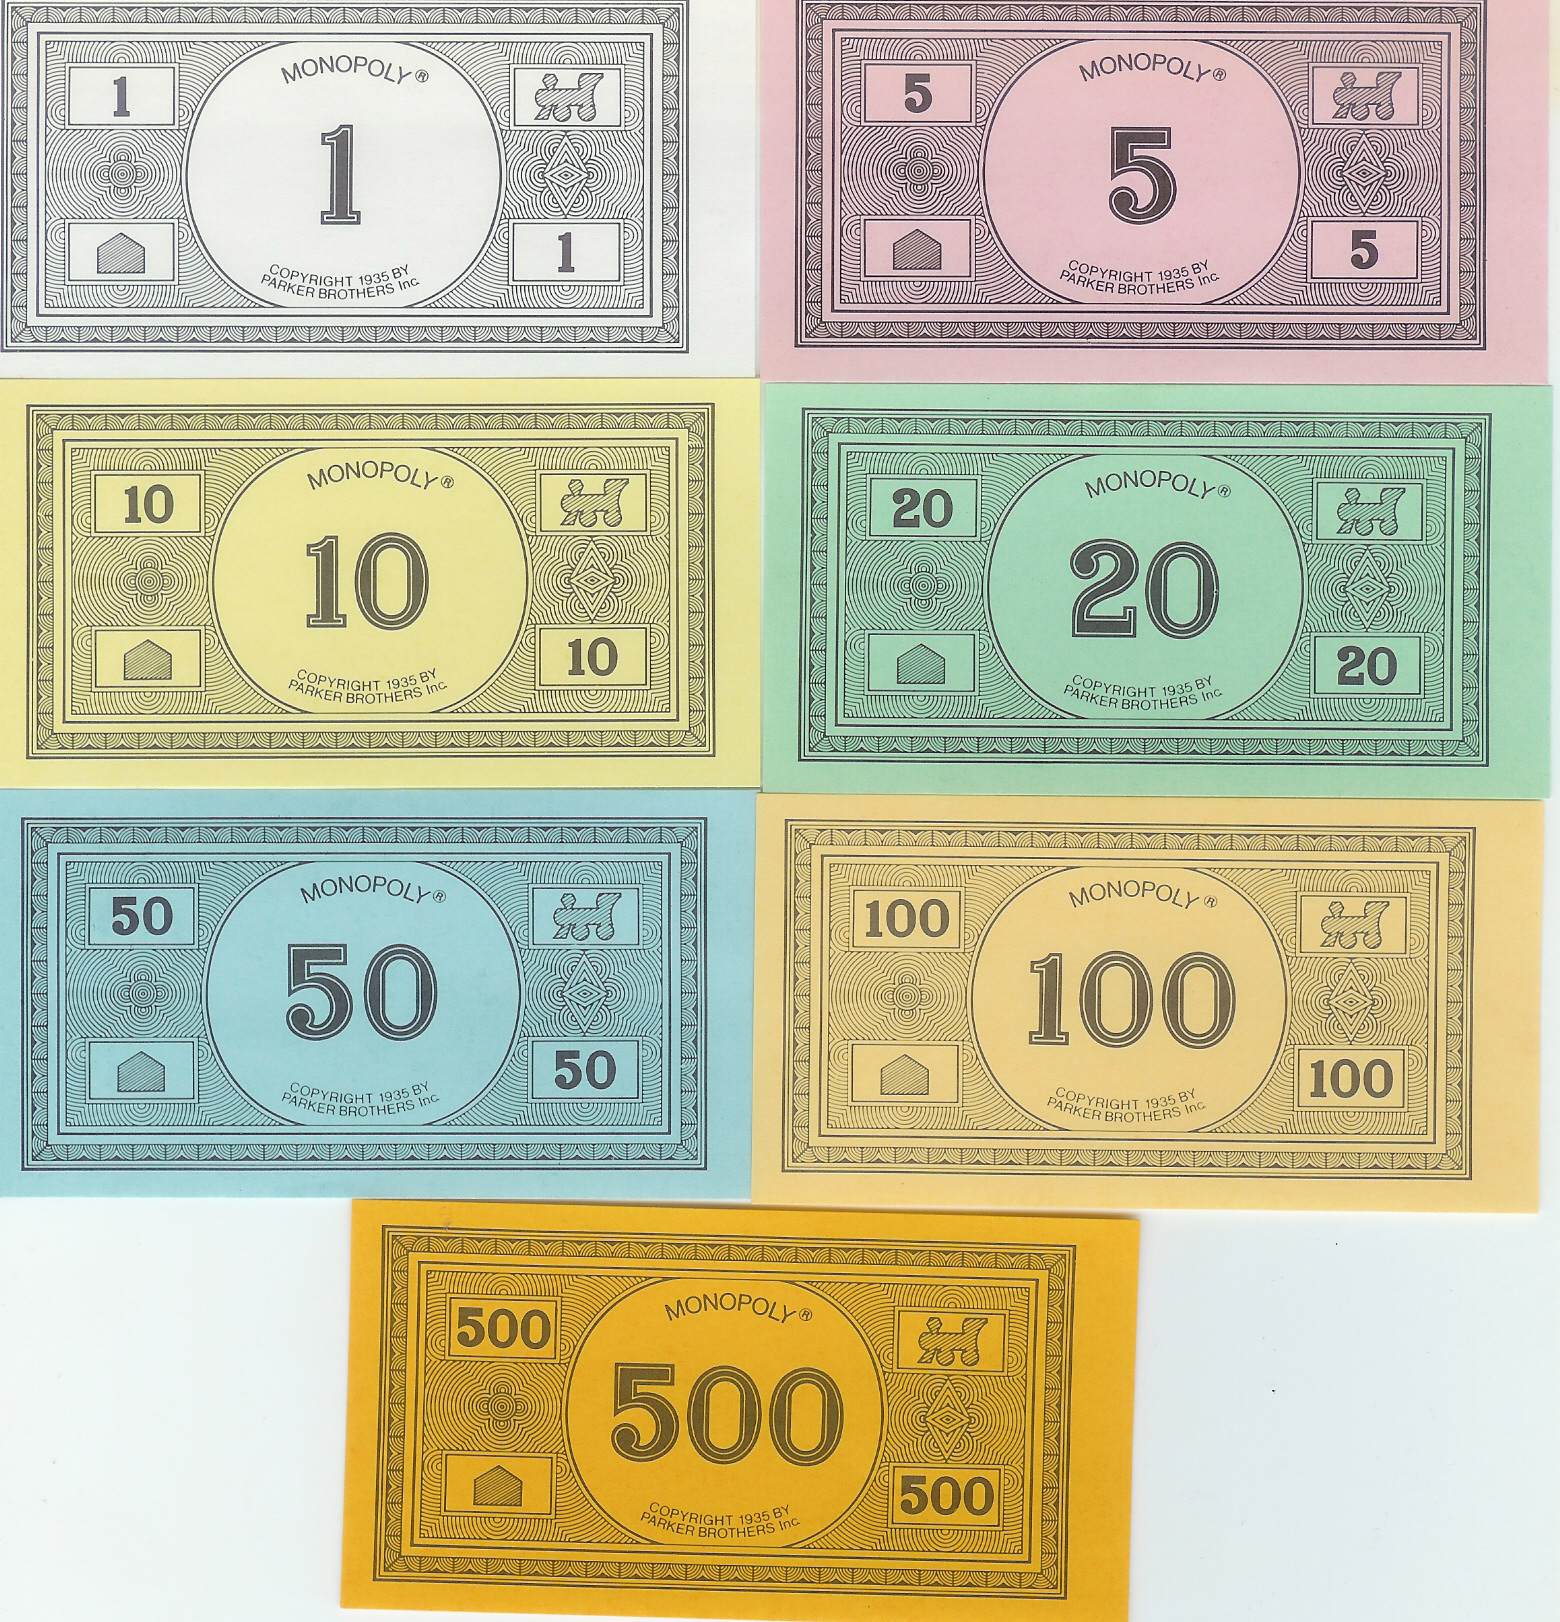 Download Monopoly Money Template.